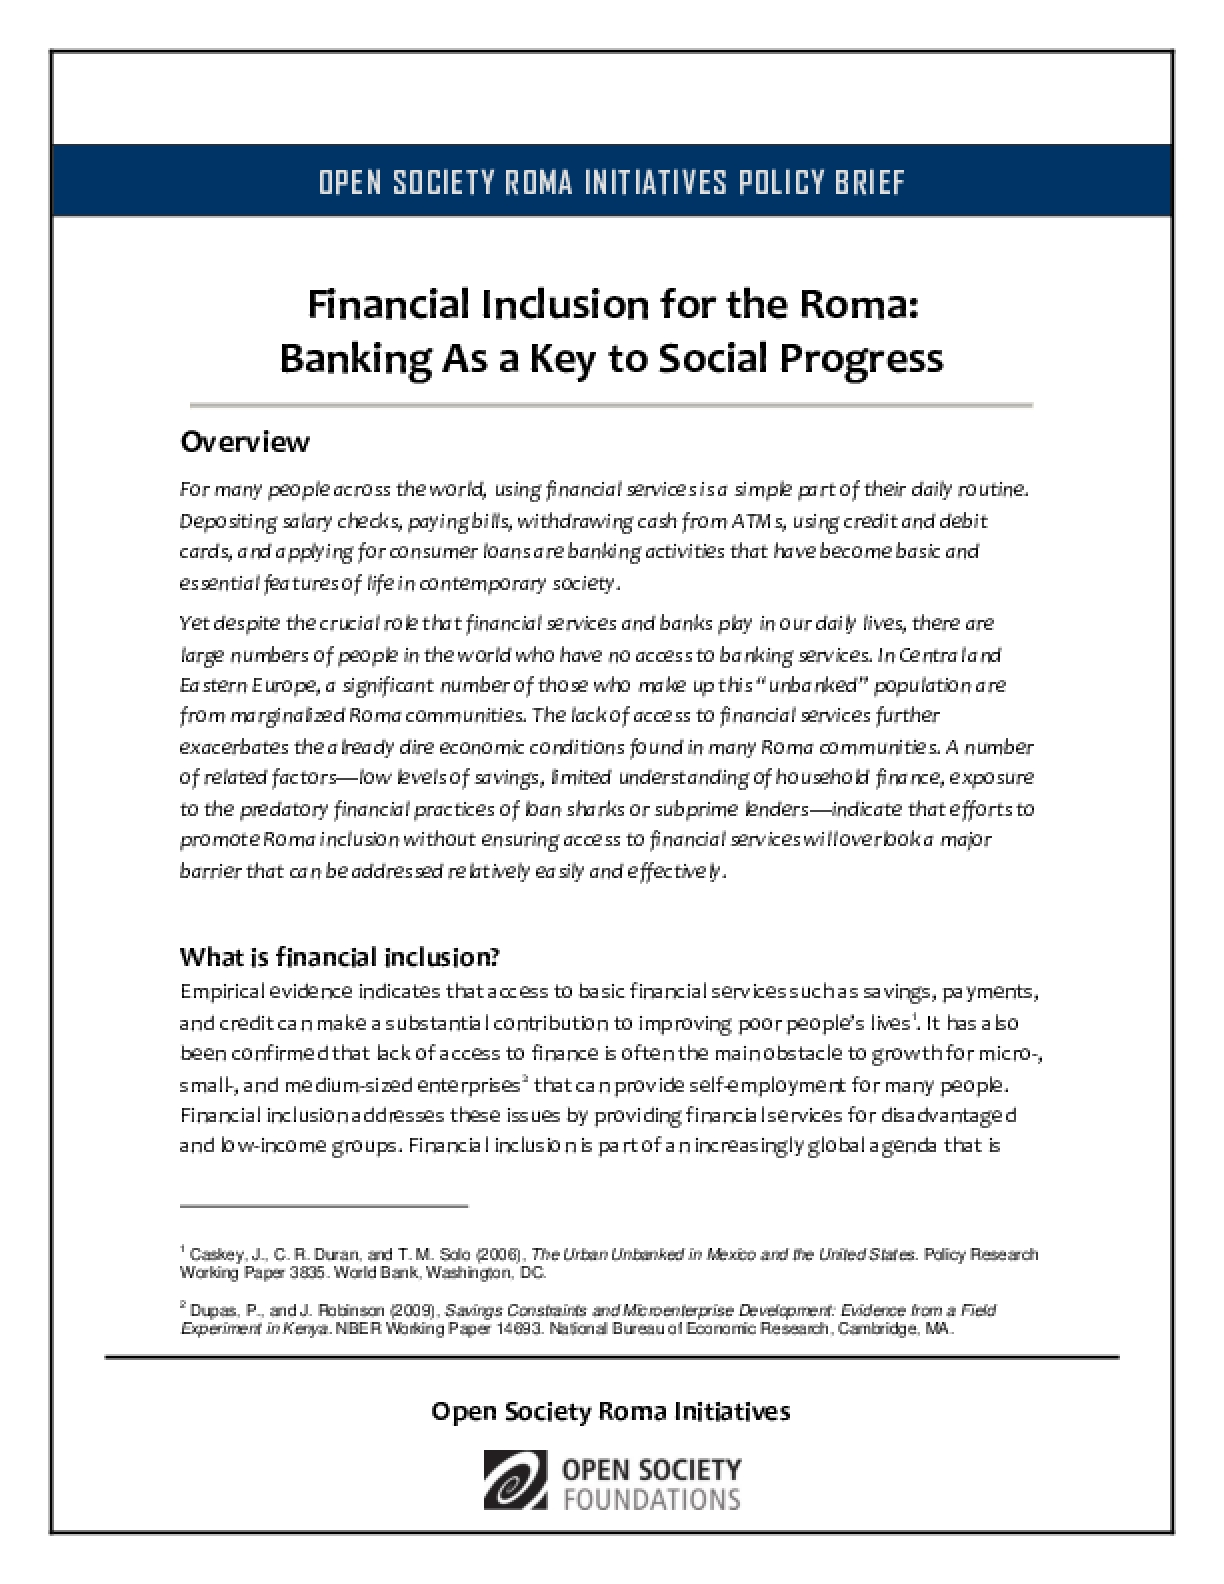 Financial Inclusion for the Roma: Banking As a Key to Social Progress